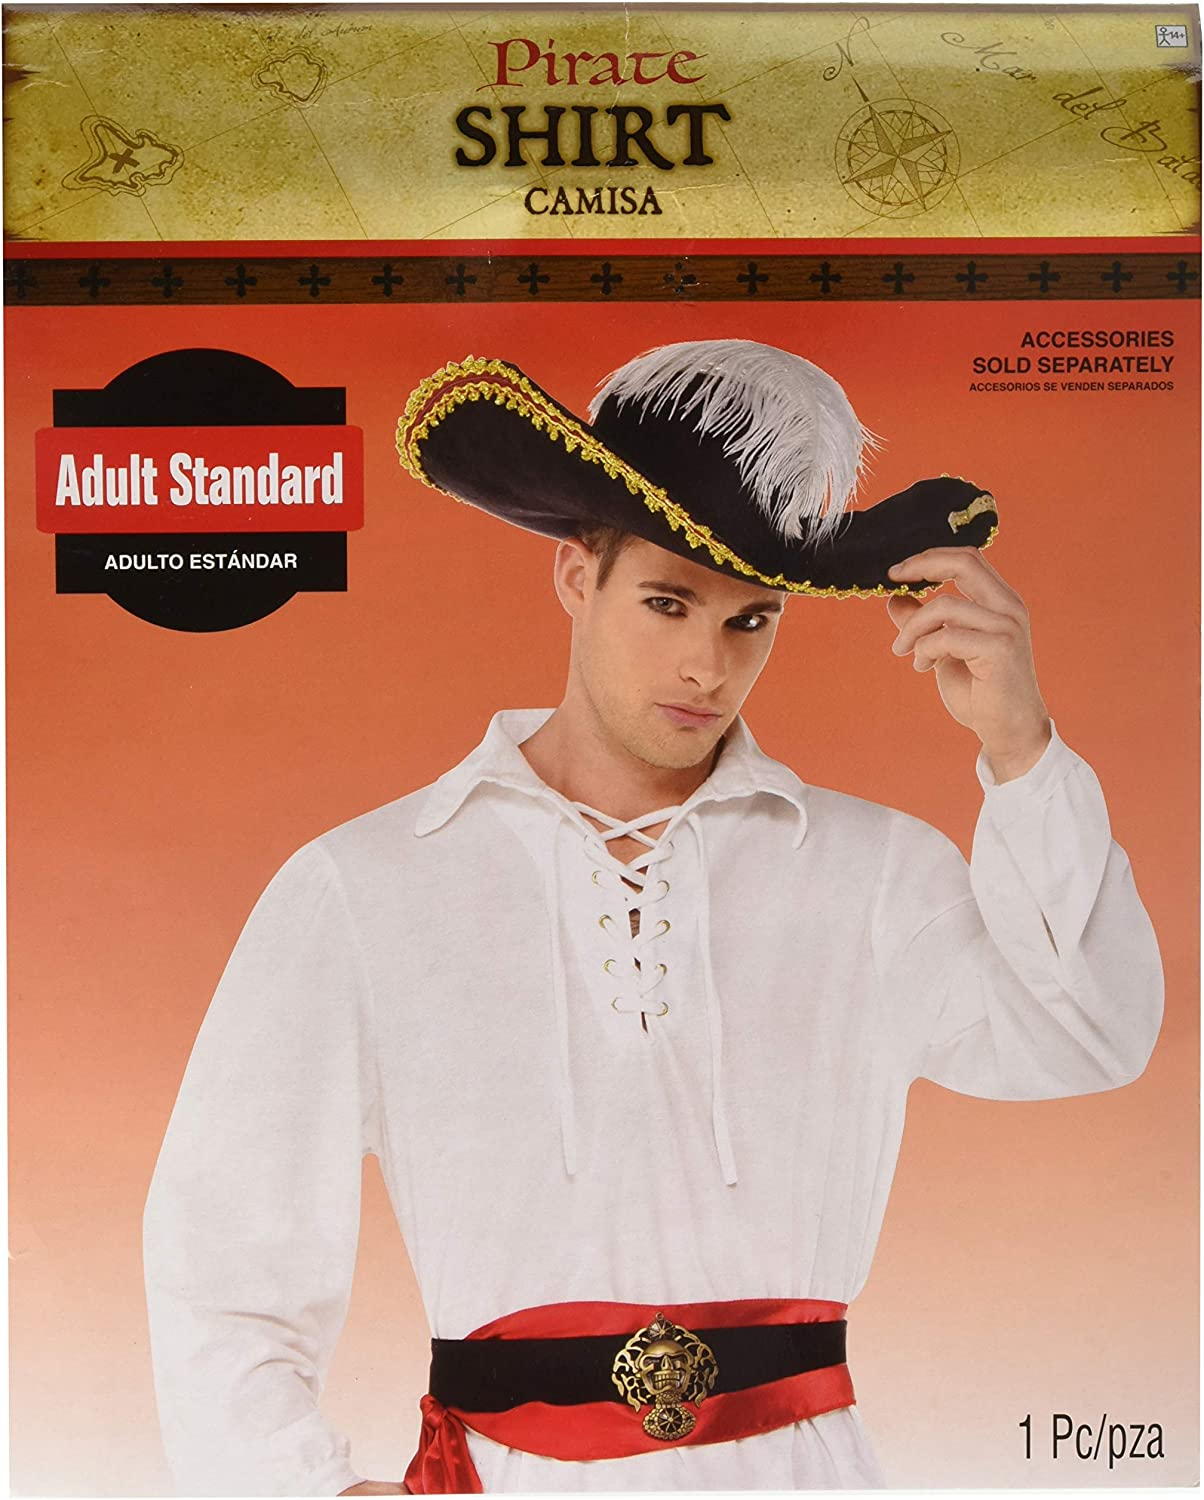 White Pirate Shirt Costume  Standard  Chest Size 42 by Amscan